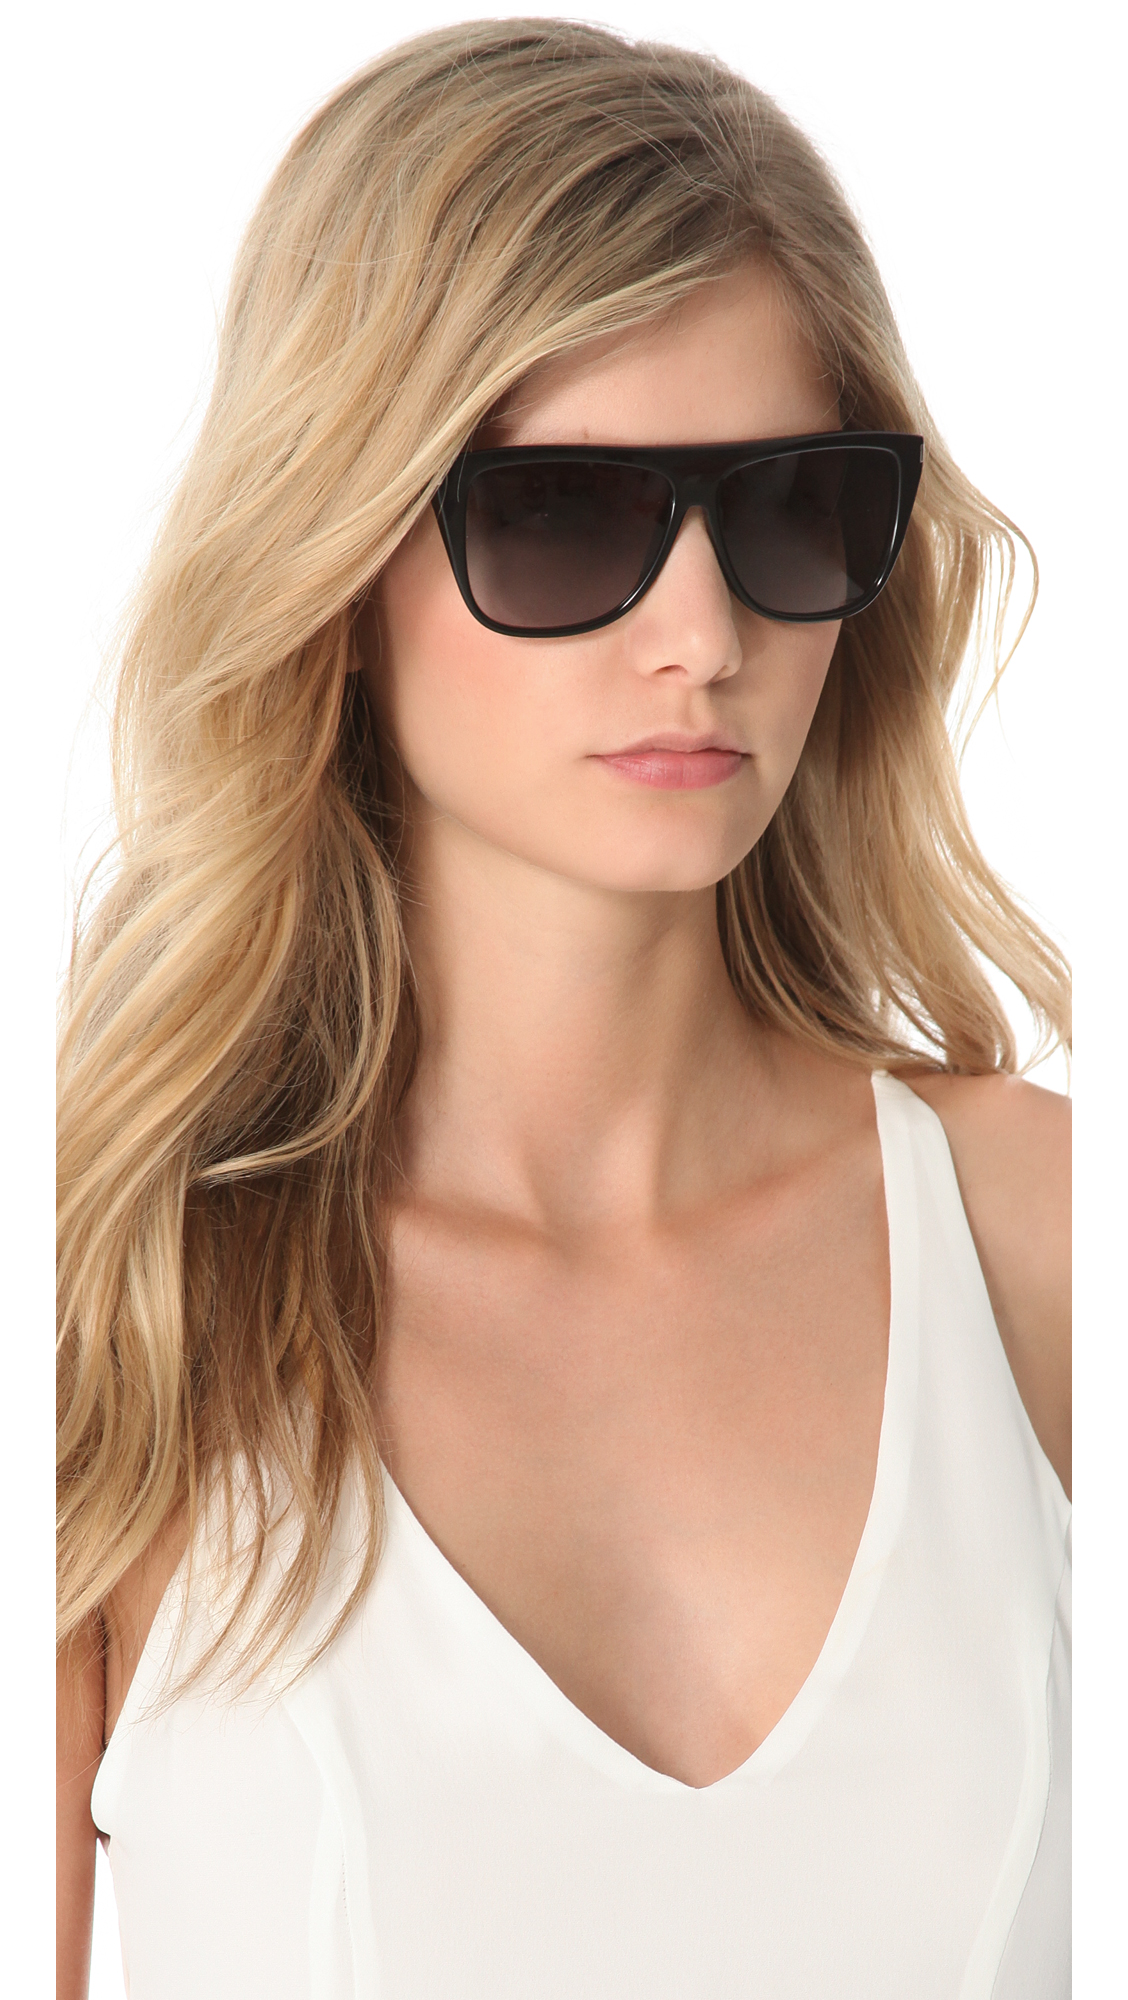 Flat Top Sunglasses Womens  saint lau flat top sunglasses black grey grant in black